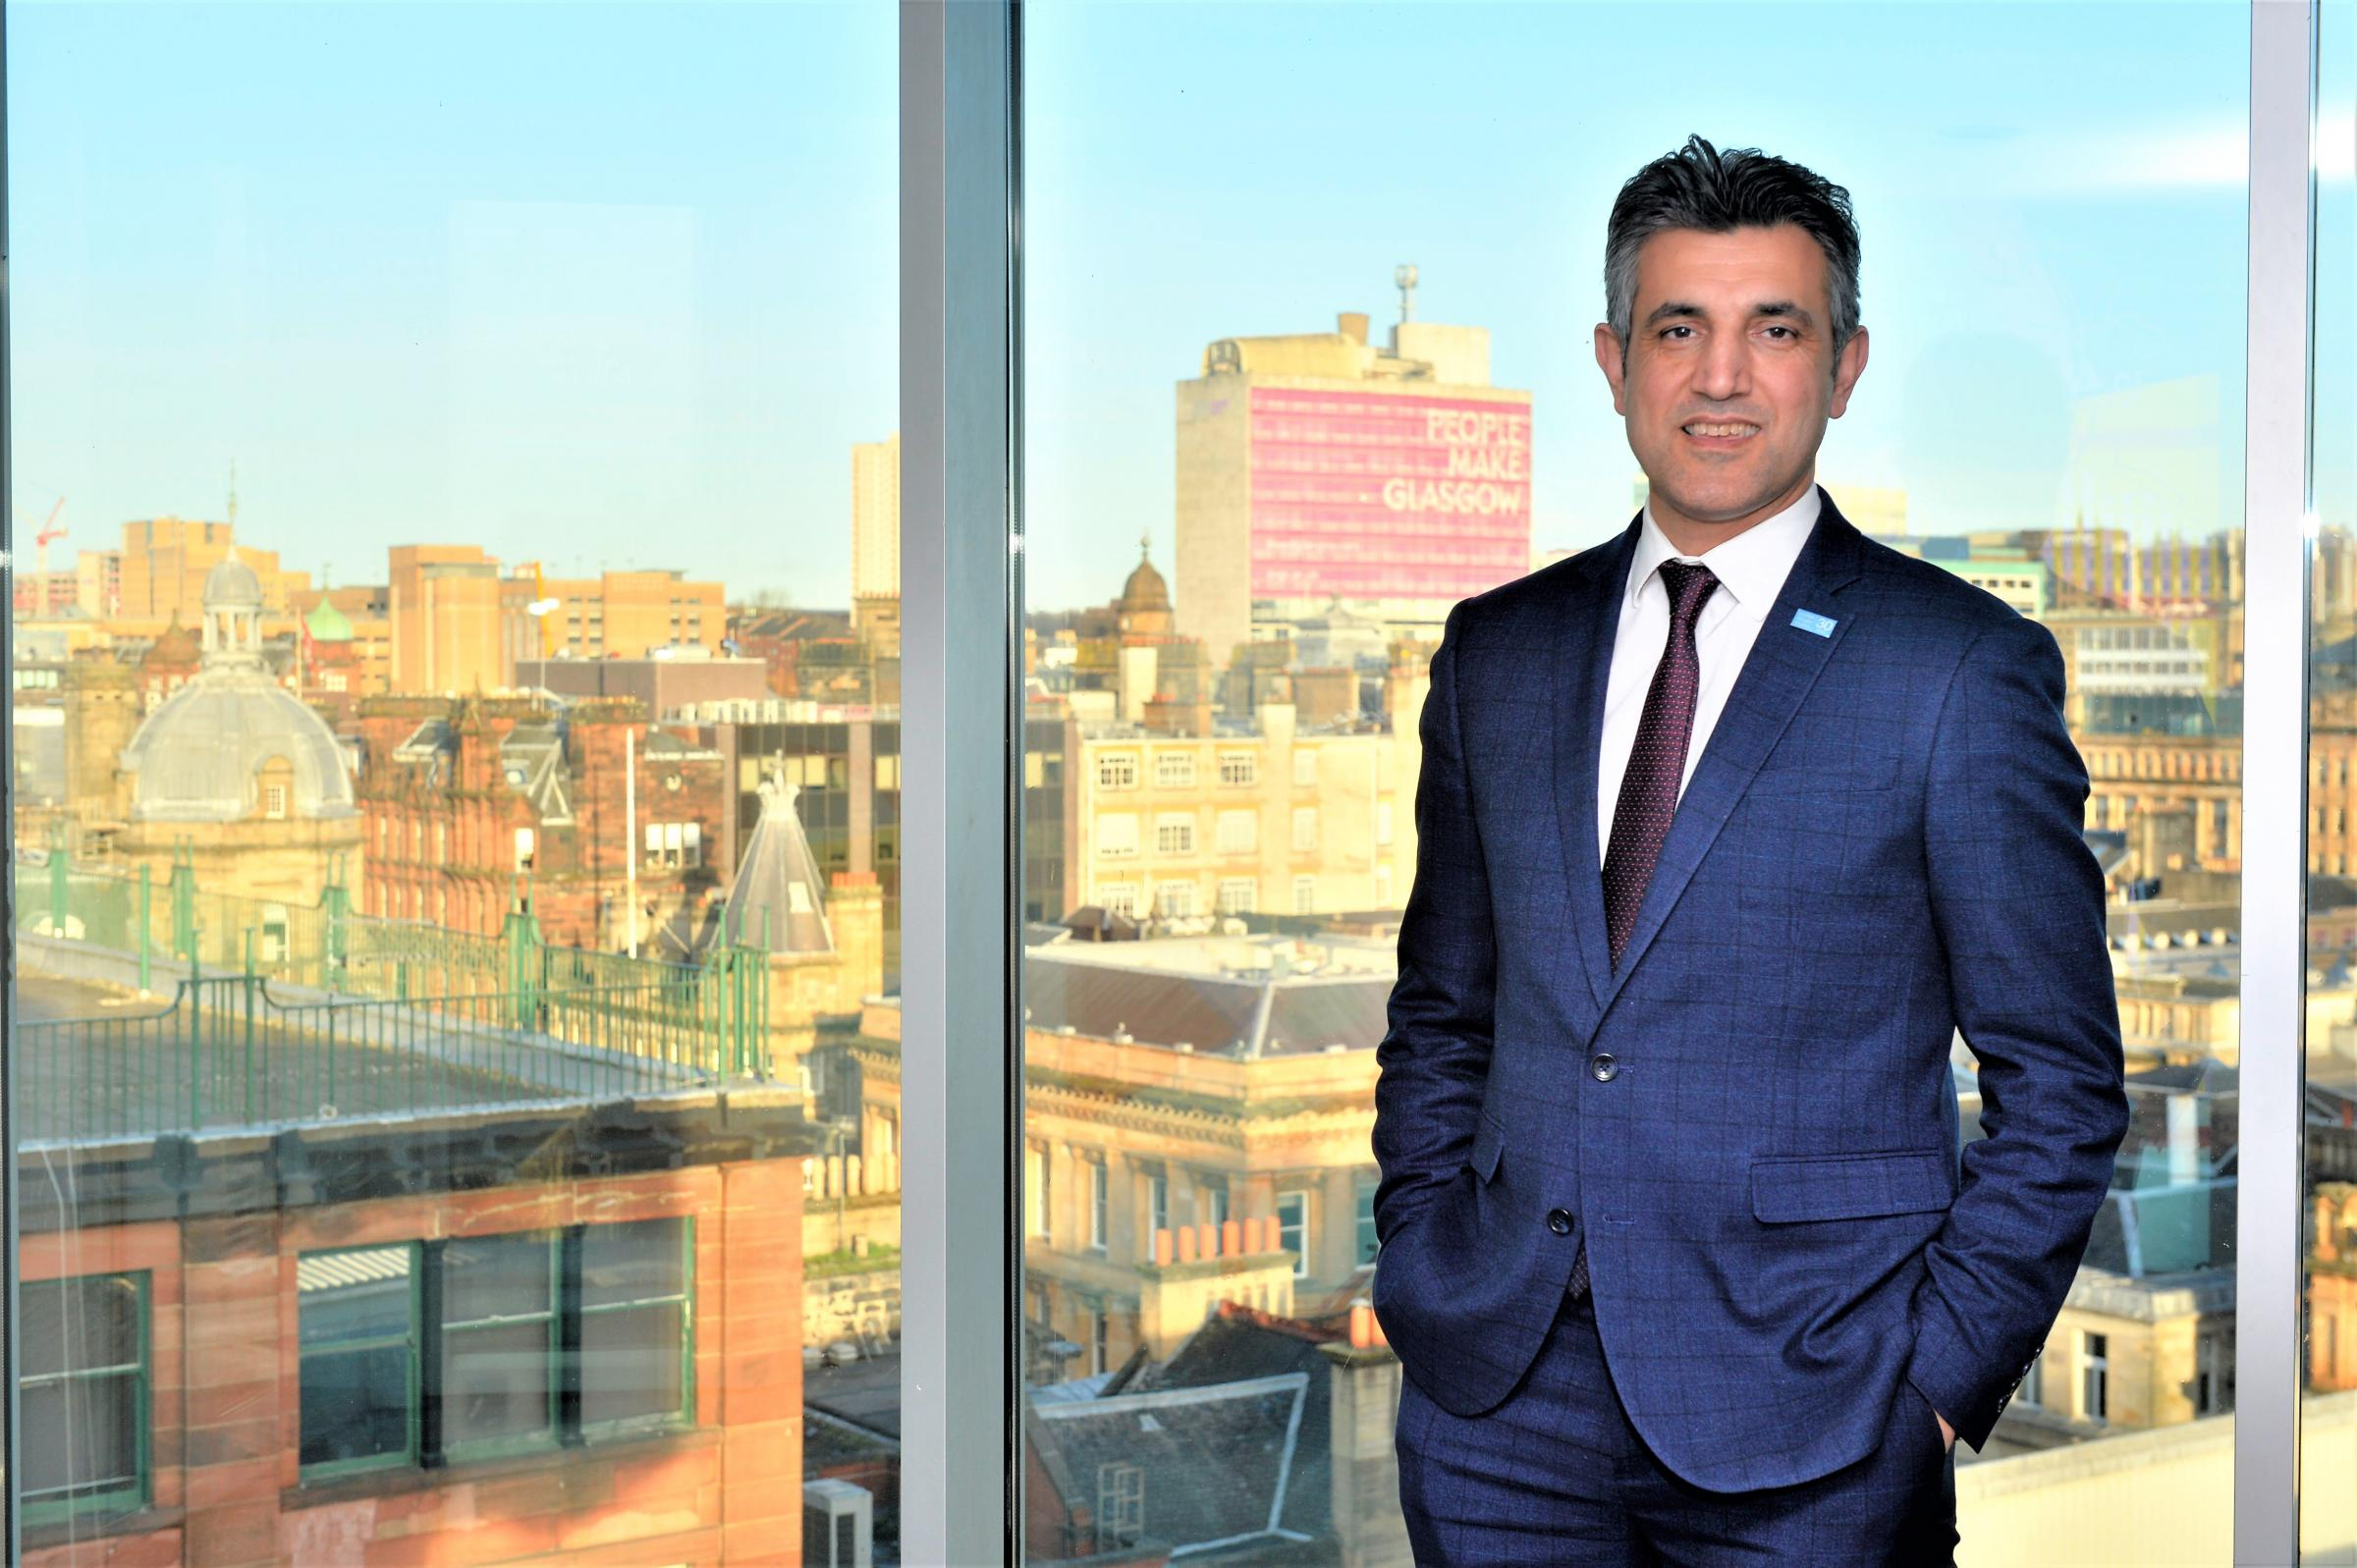 Scottish Refugee Council CEO Sabir Zazai on what has shaped him